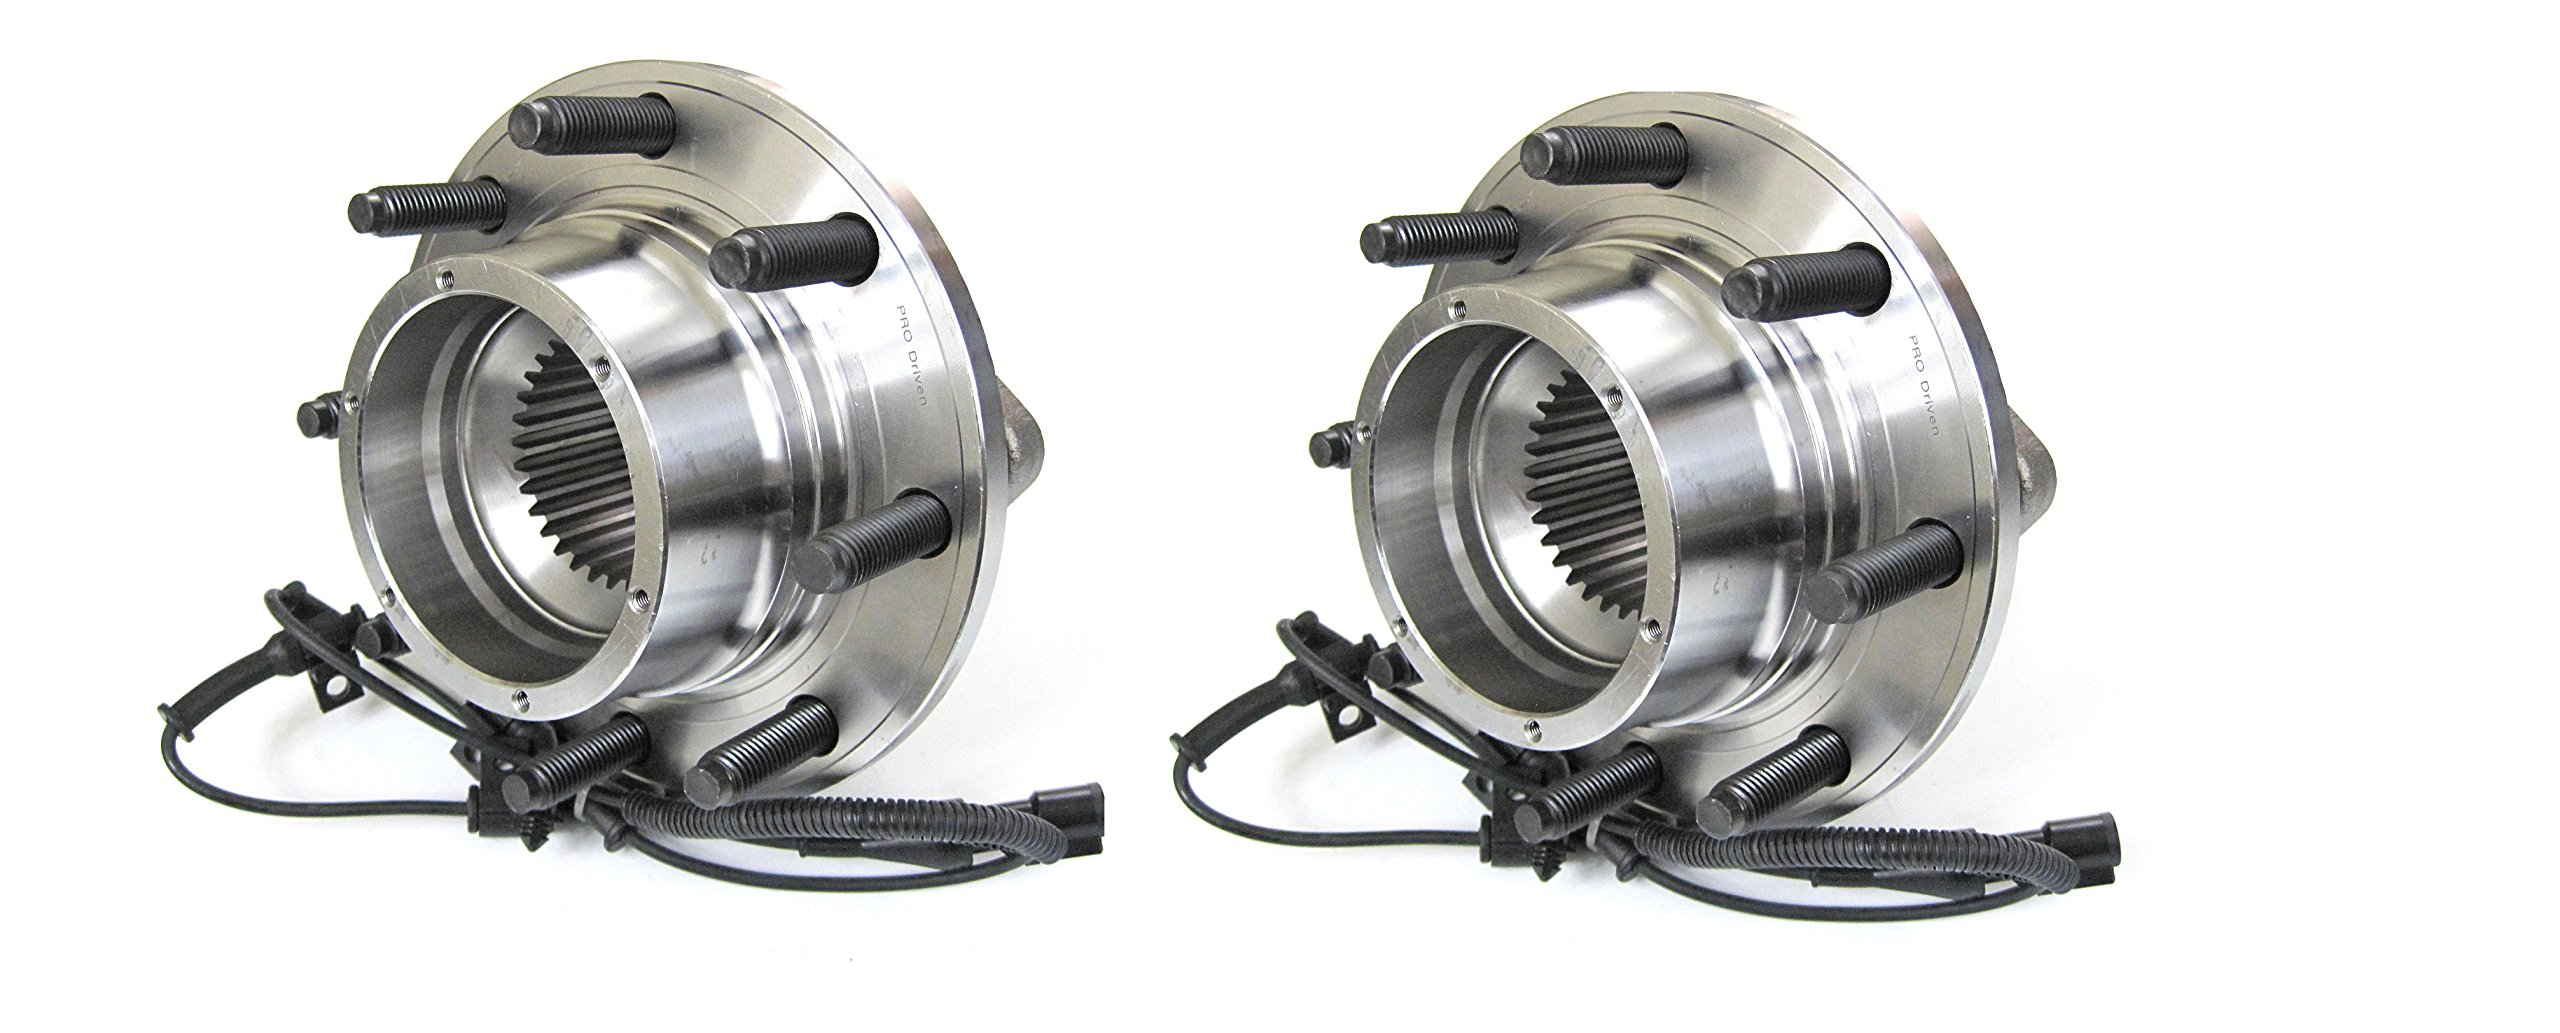 Pro Driven (Both) 515082 Wheel Bearing & Hub Assembly Ford F250/F350 4WD 2005 to 2009 w/ ABS Front -2 PCs